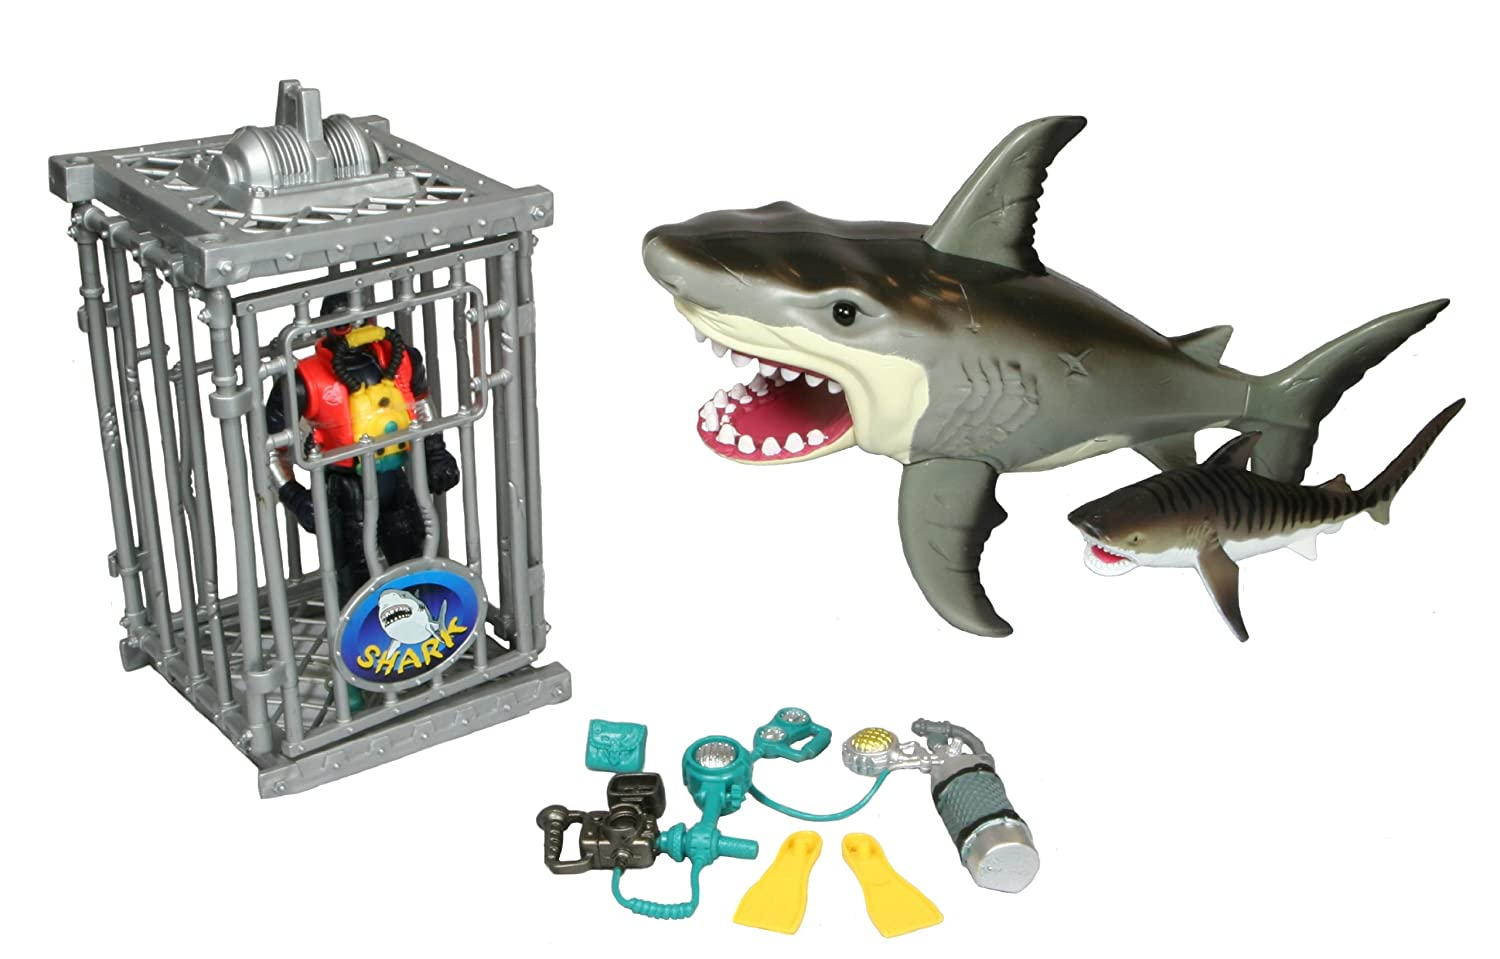 Shark Toy Set : Shark whale playset and great white animal tiger toy set